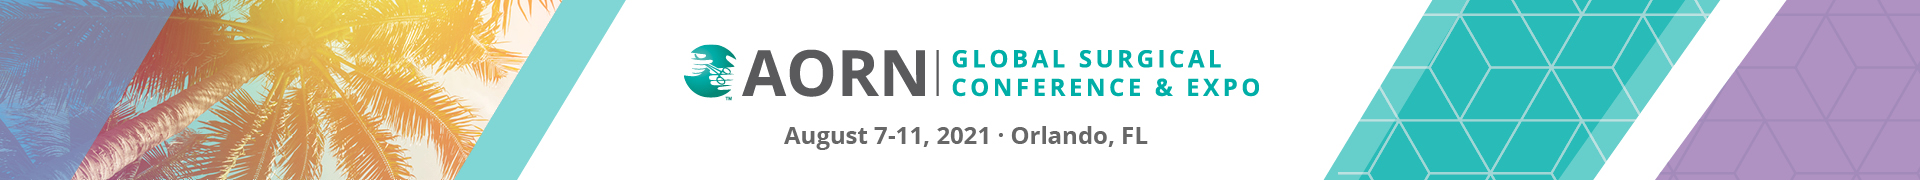 AORN Global Surgical Conference & Expo 2021 Event Banner